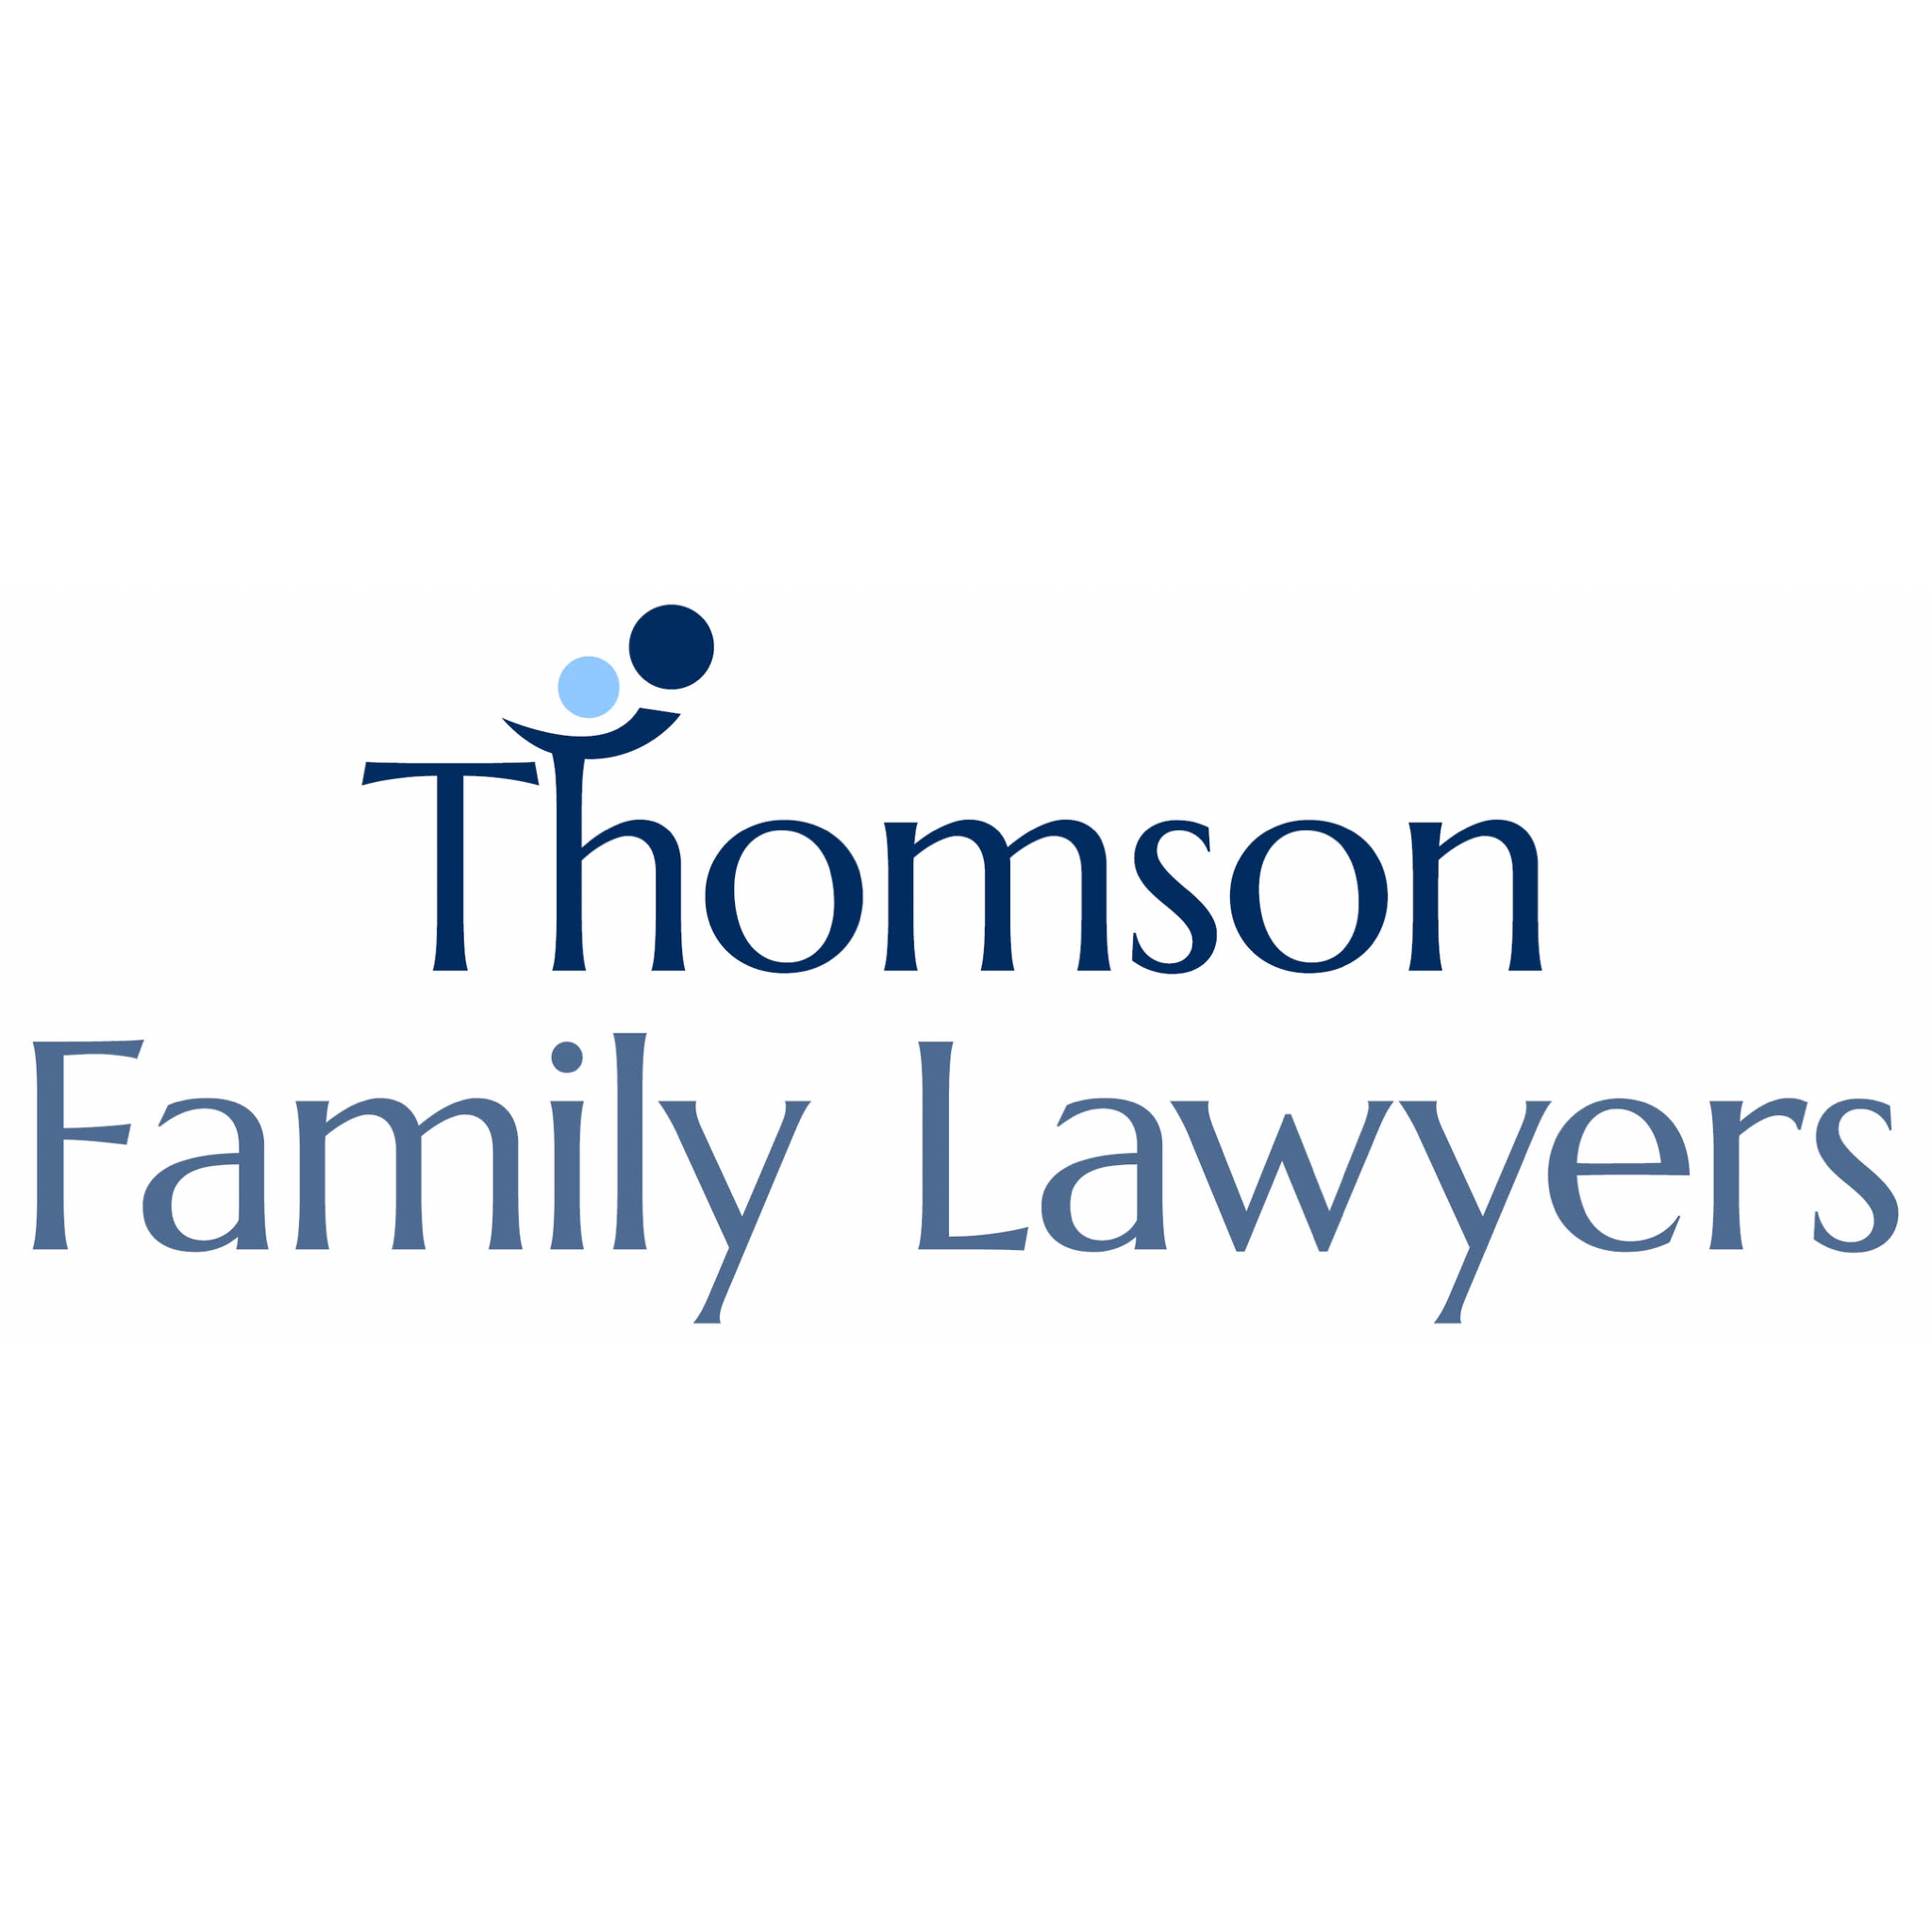 Business logo of Thomson Family Lawyers